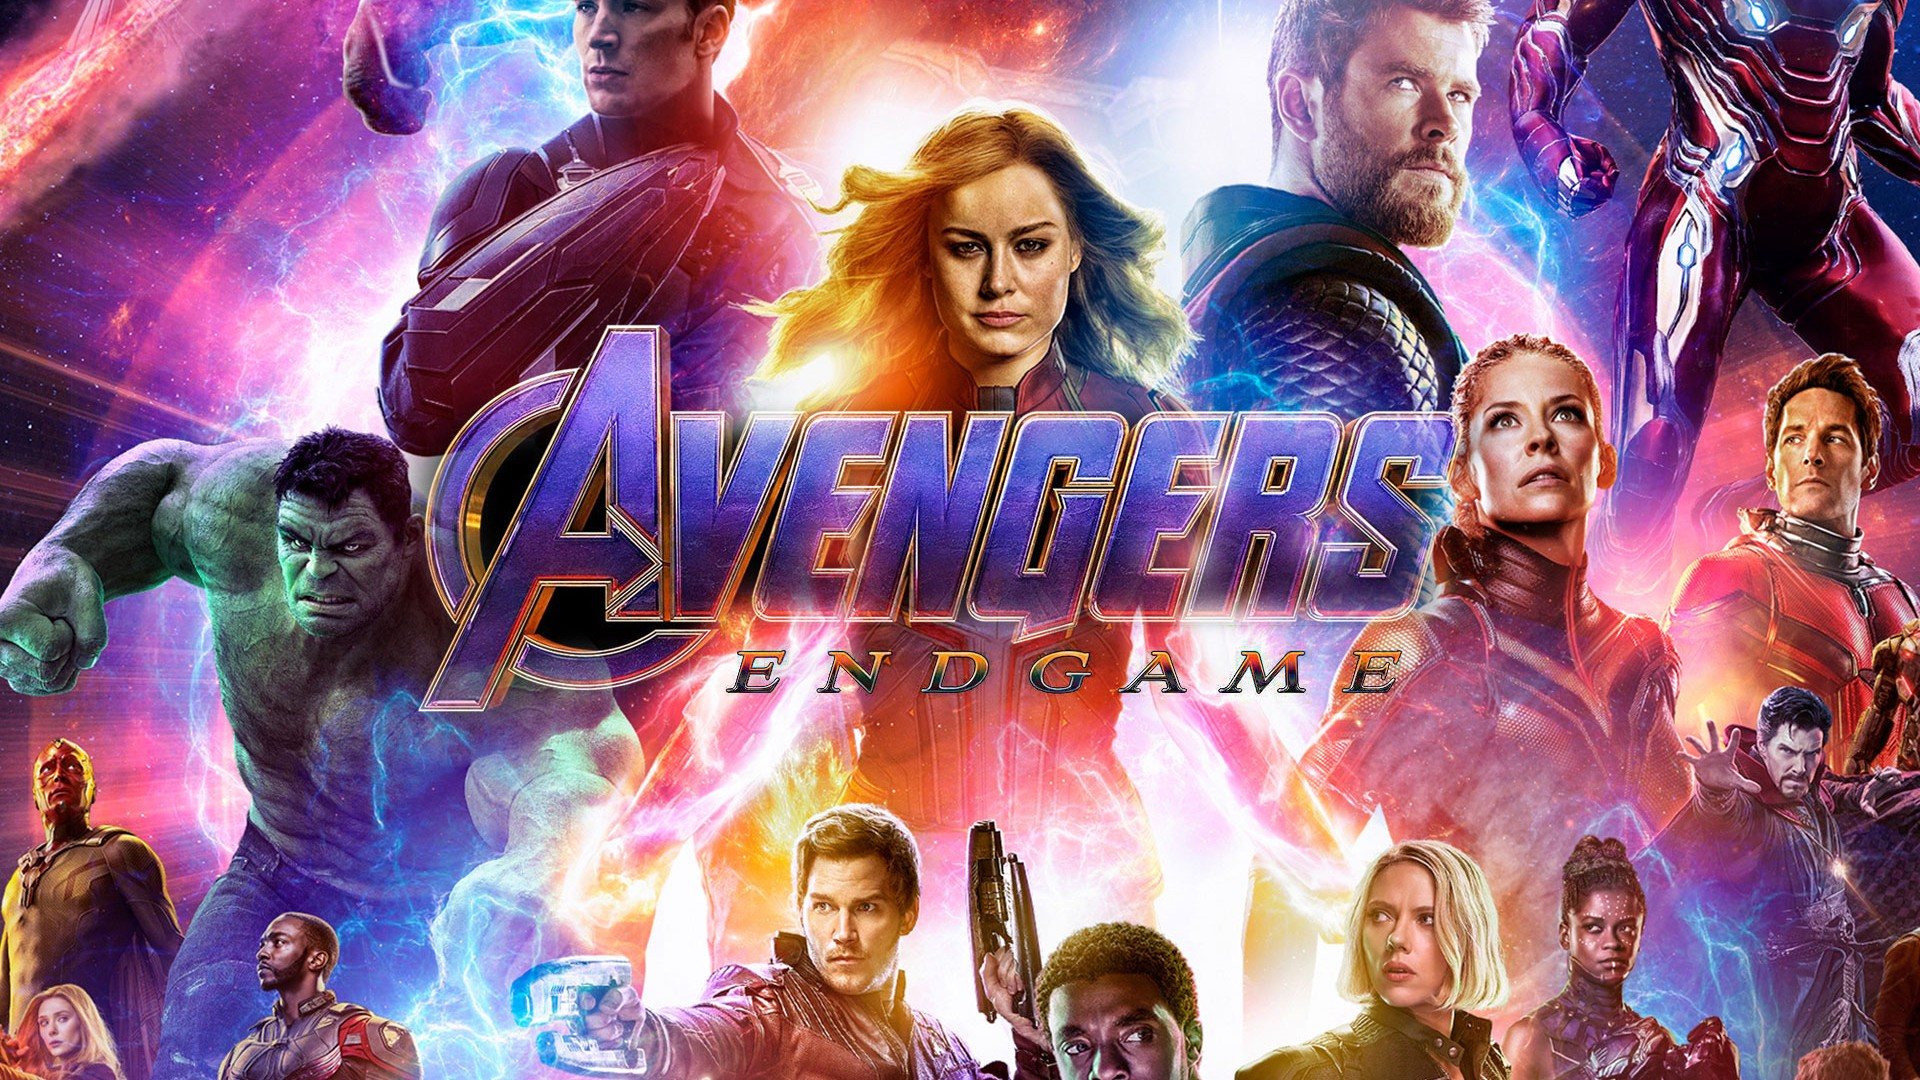 21 Avengers Endgame Cast Wallpapers On Wallpapersafari